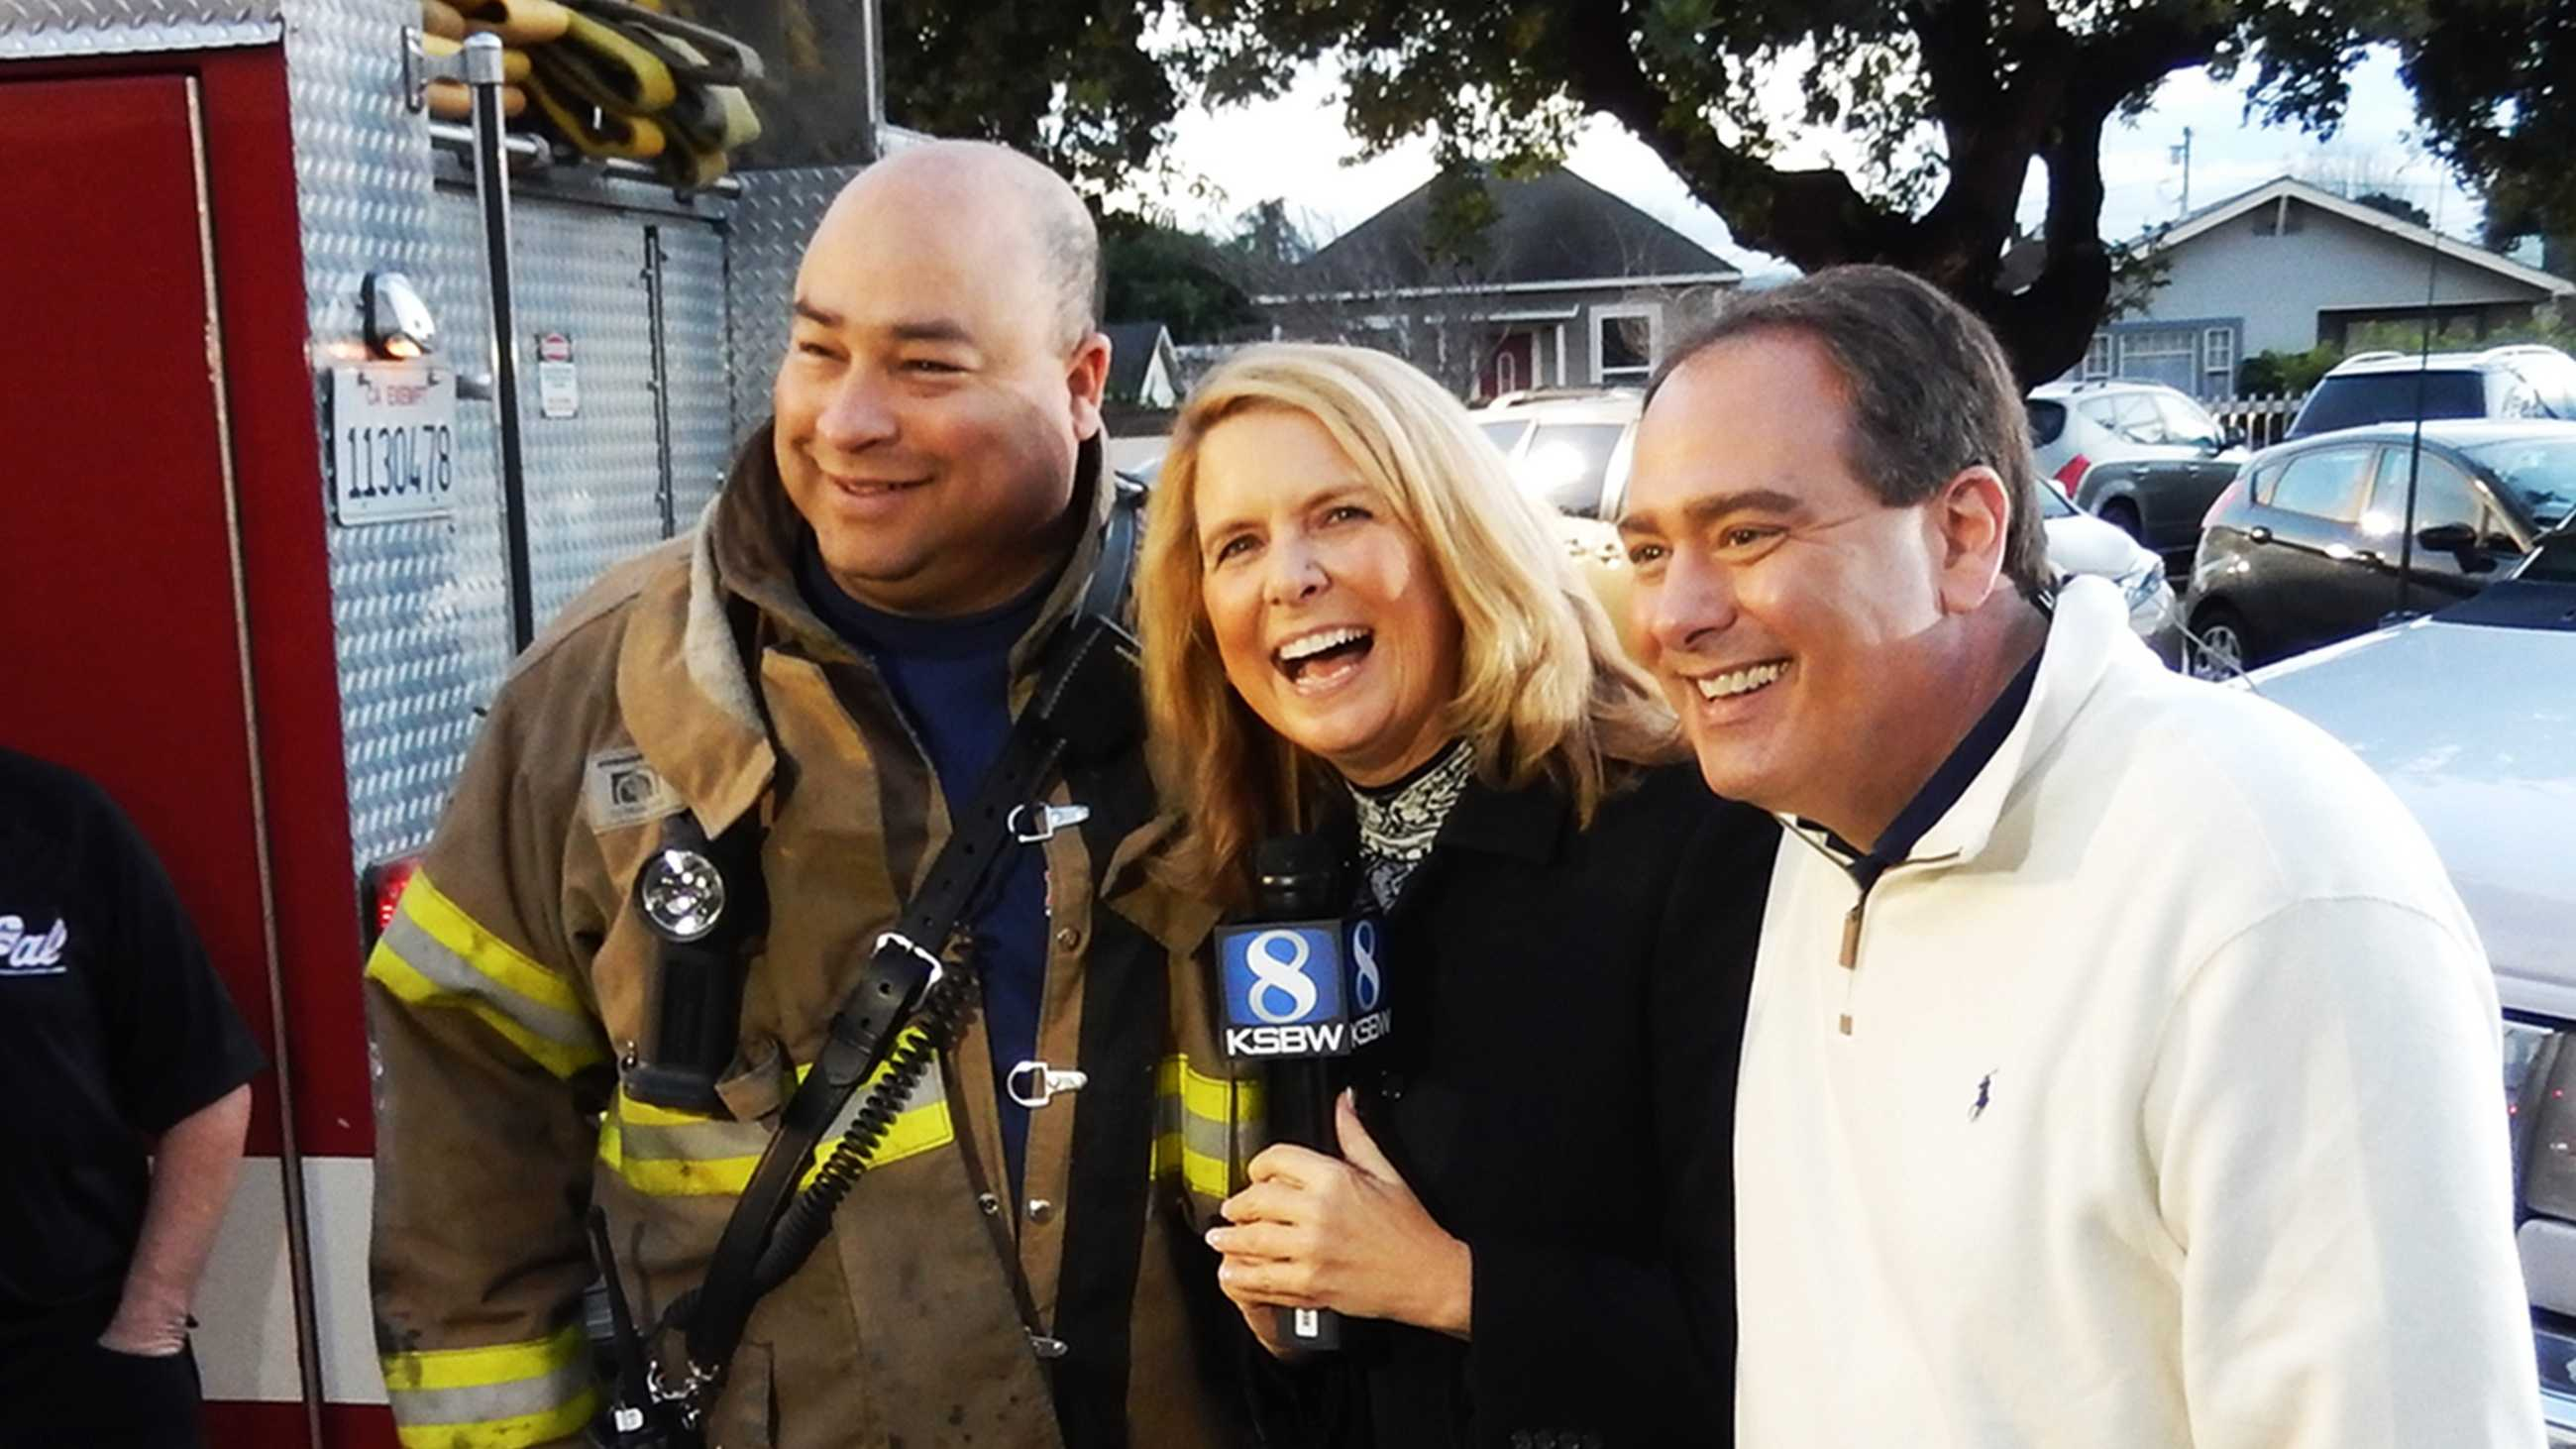 Dan Green, Erin Clark, and Dan Green! This fireman's name really is Dan Green.